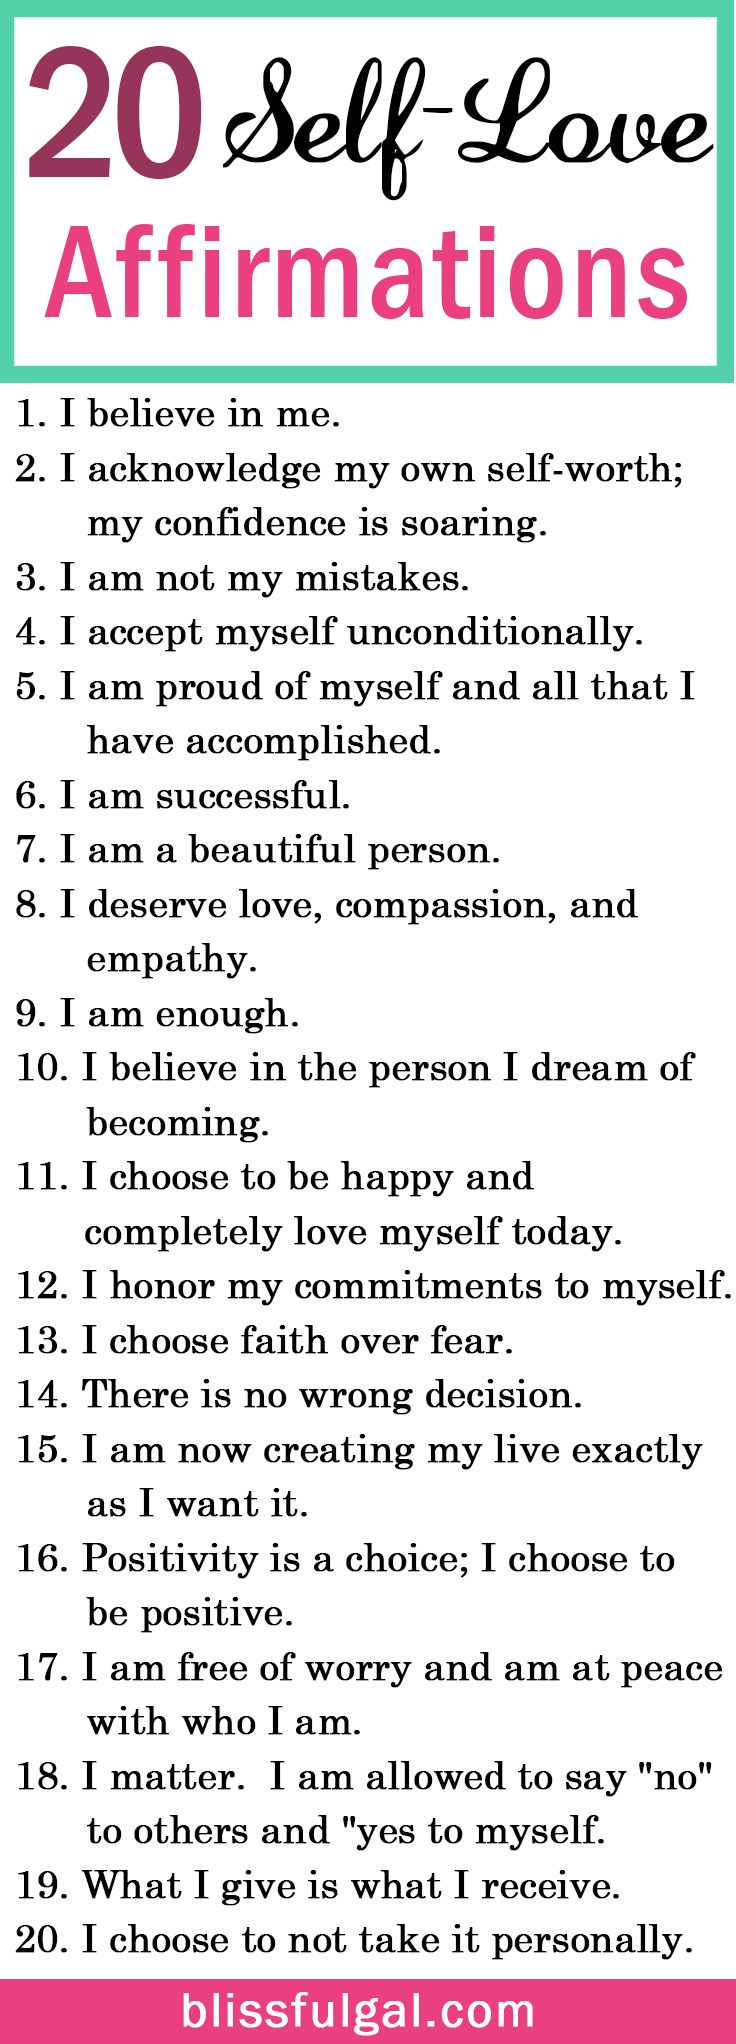 Self-love and affirmations quotes can be the perfect remedy to create a happier life. These affirmations for happiness are just what you need for self-improvement.